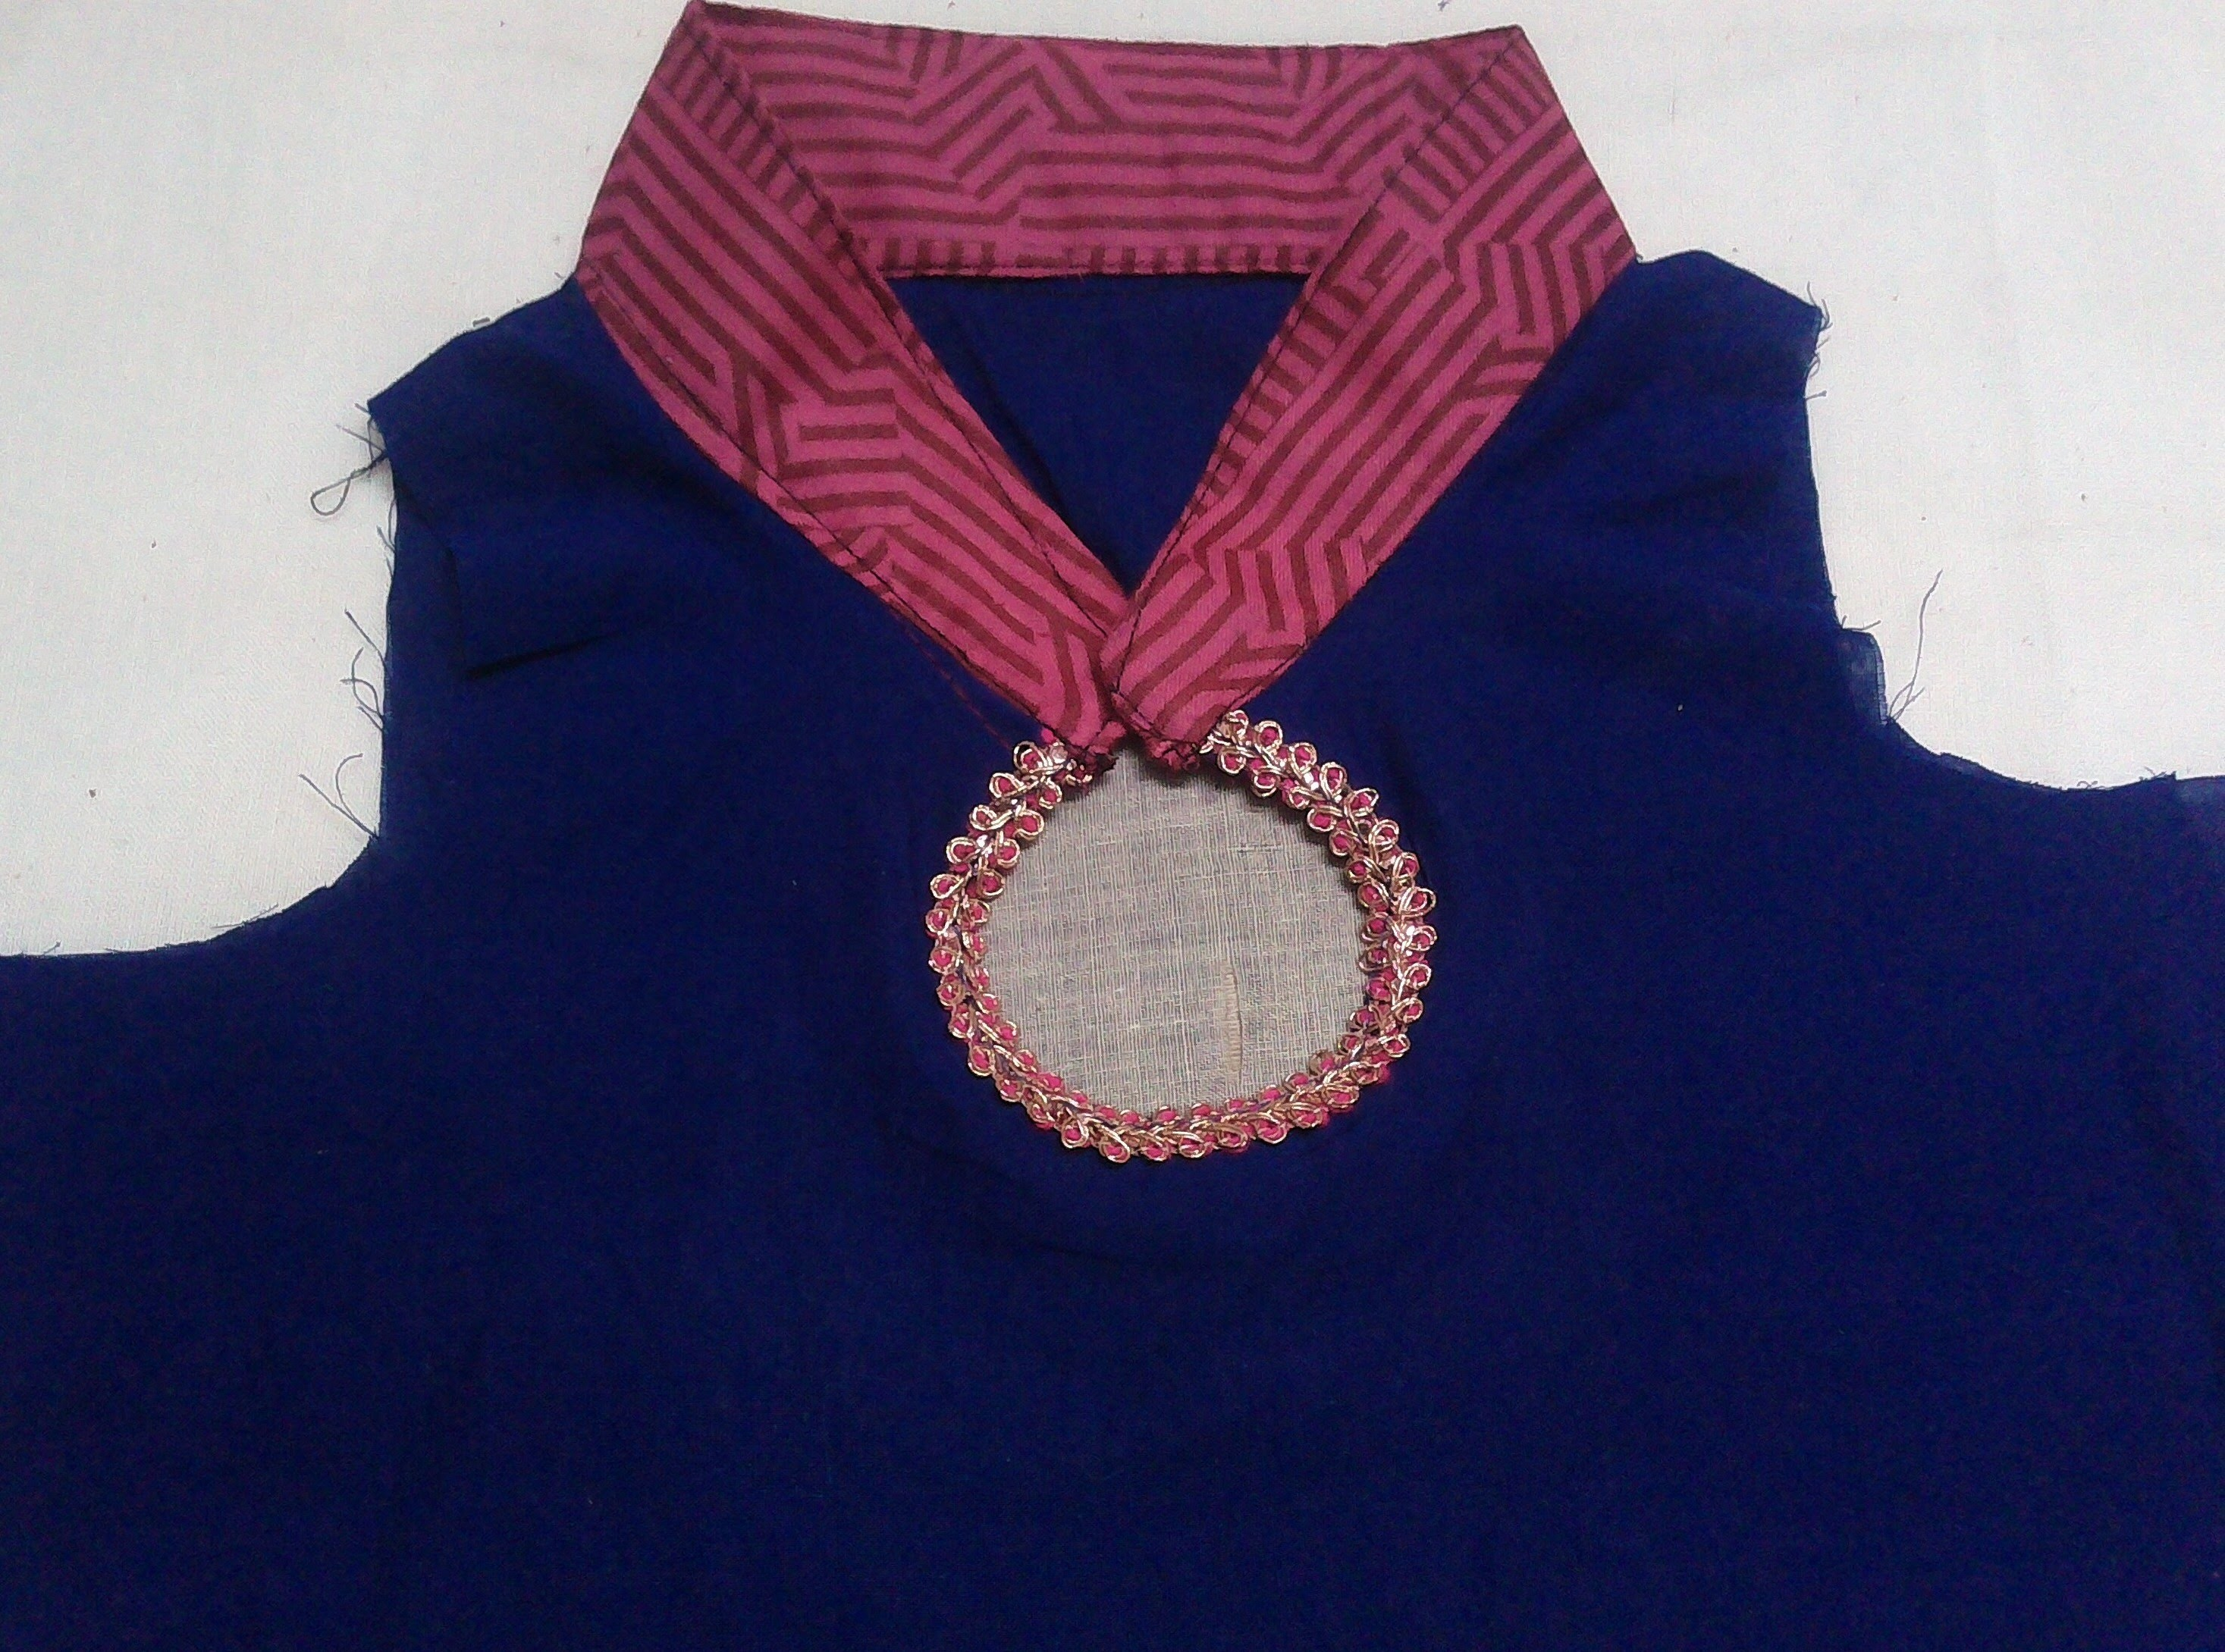 Chinese Collar Cutting and Stitching (DIY)